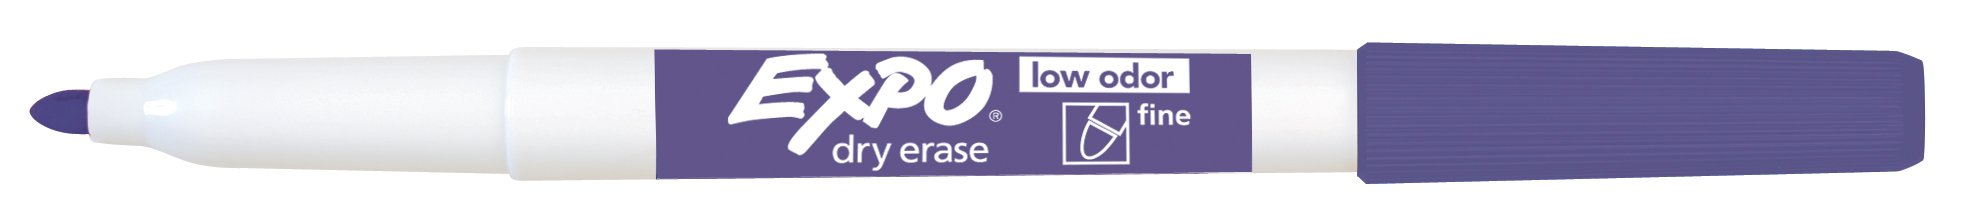 EXPO Low-Odor Dry Erase Markers, Fine Tip, Assorted Colors, 36 Count by Expo (Image #4)